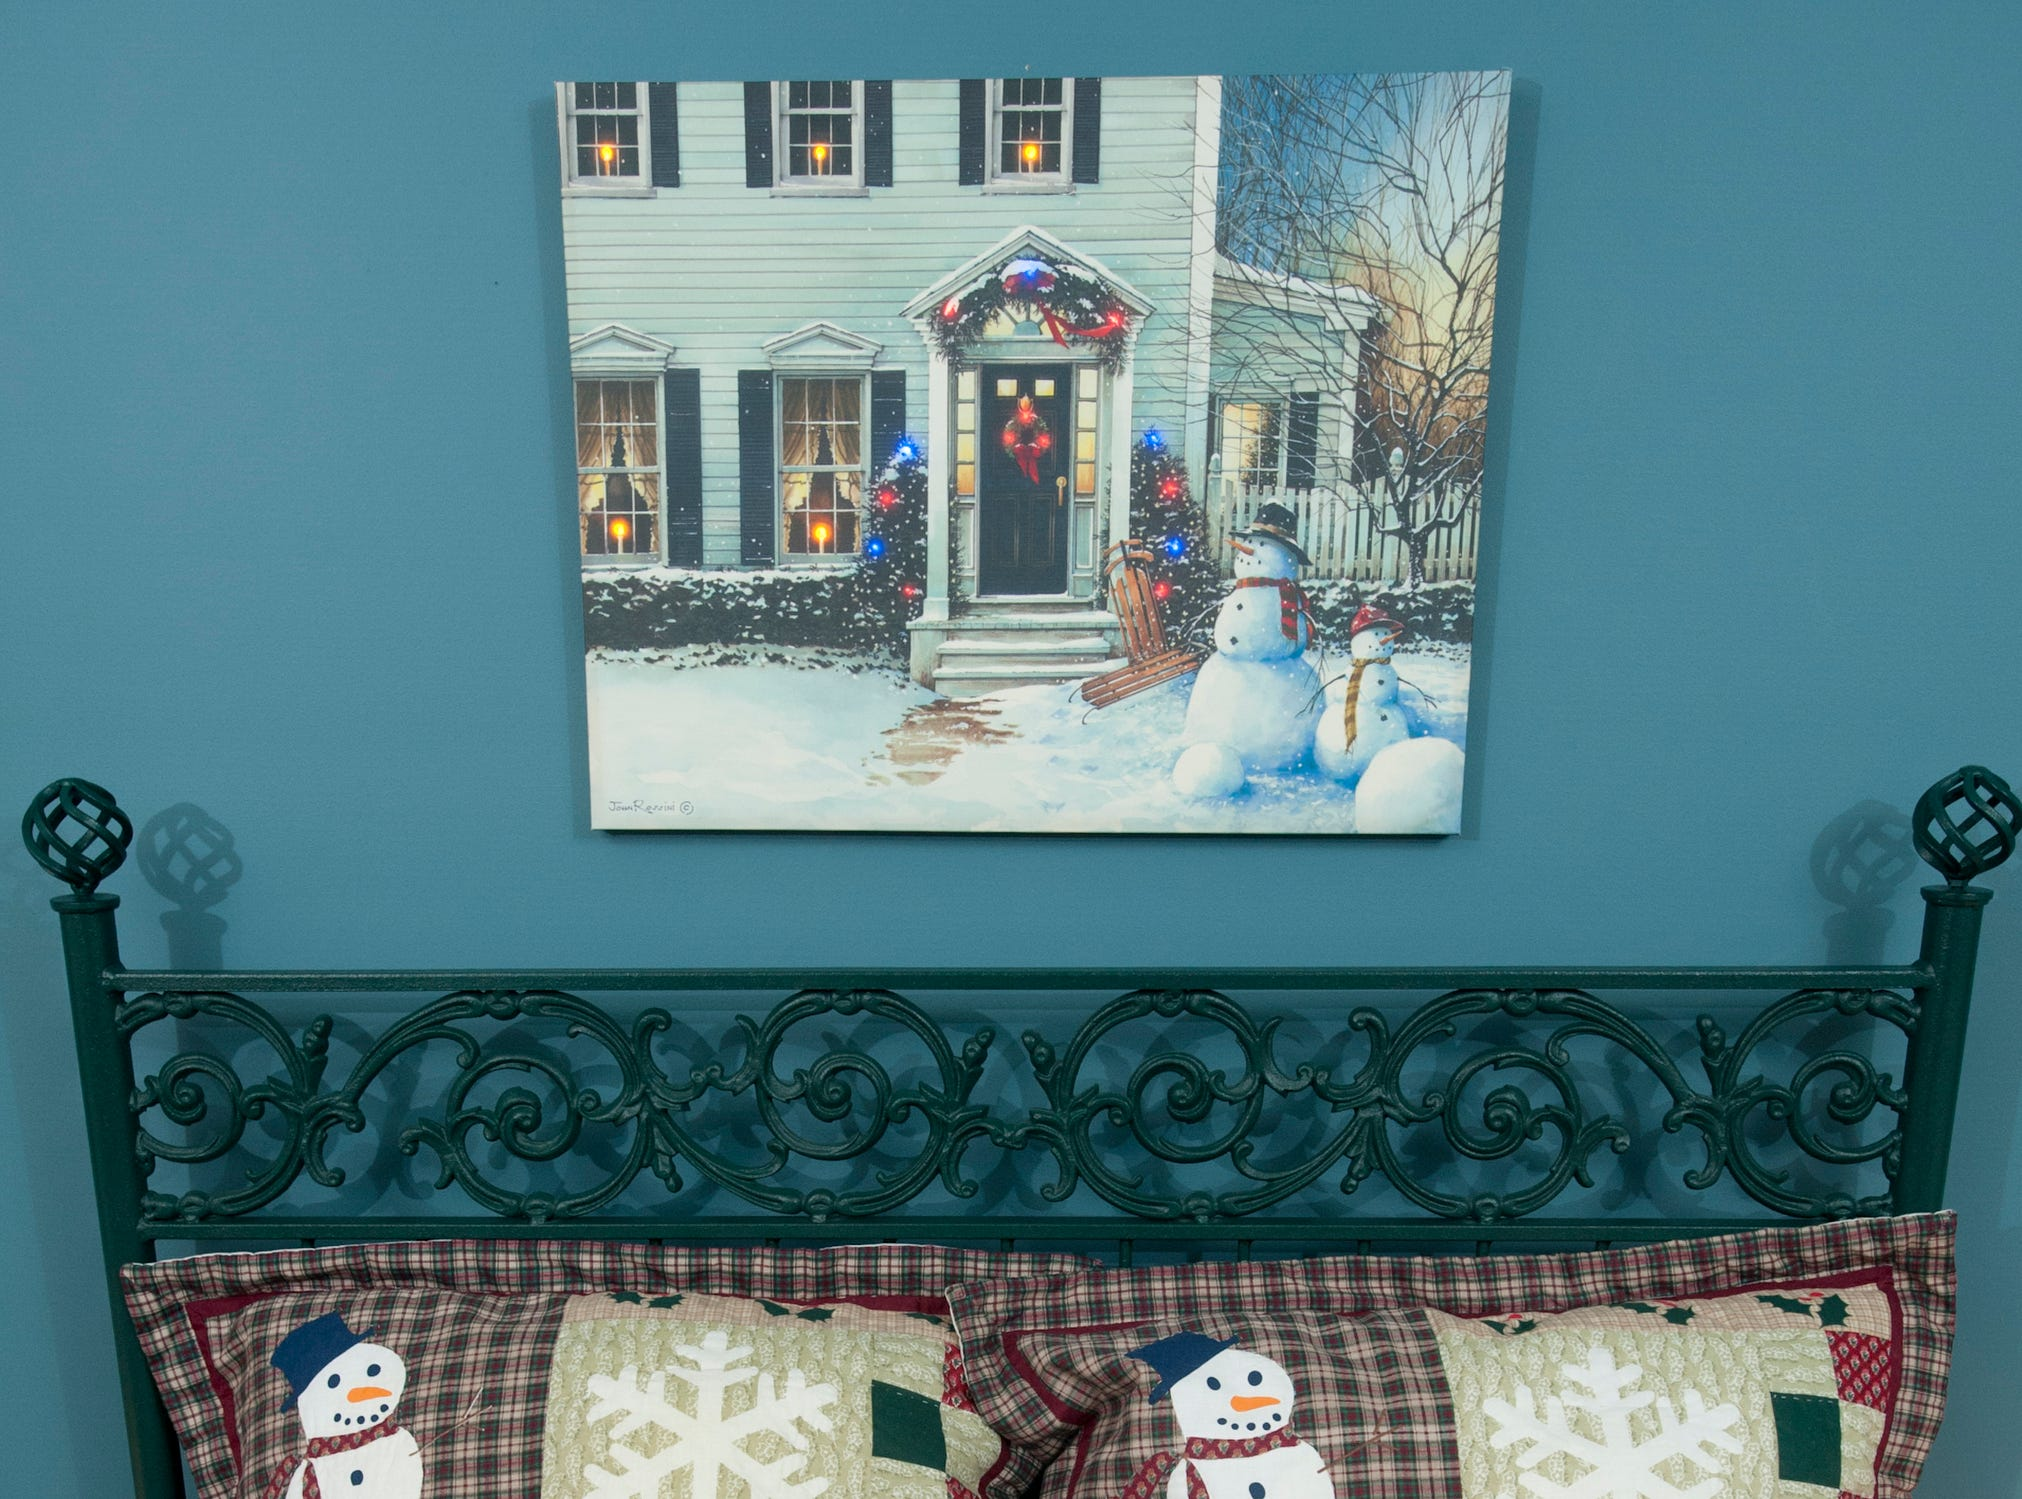 A Christmas season bed quilt, pillows and painting decorate the guest room of the McMurry home.